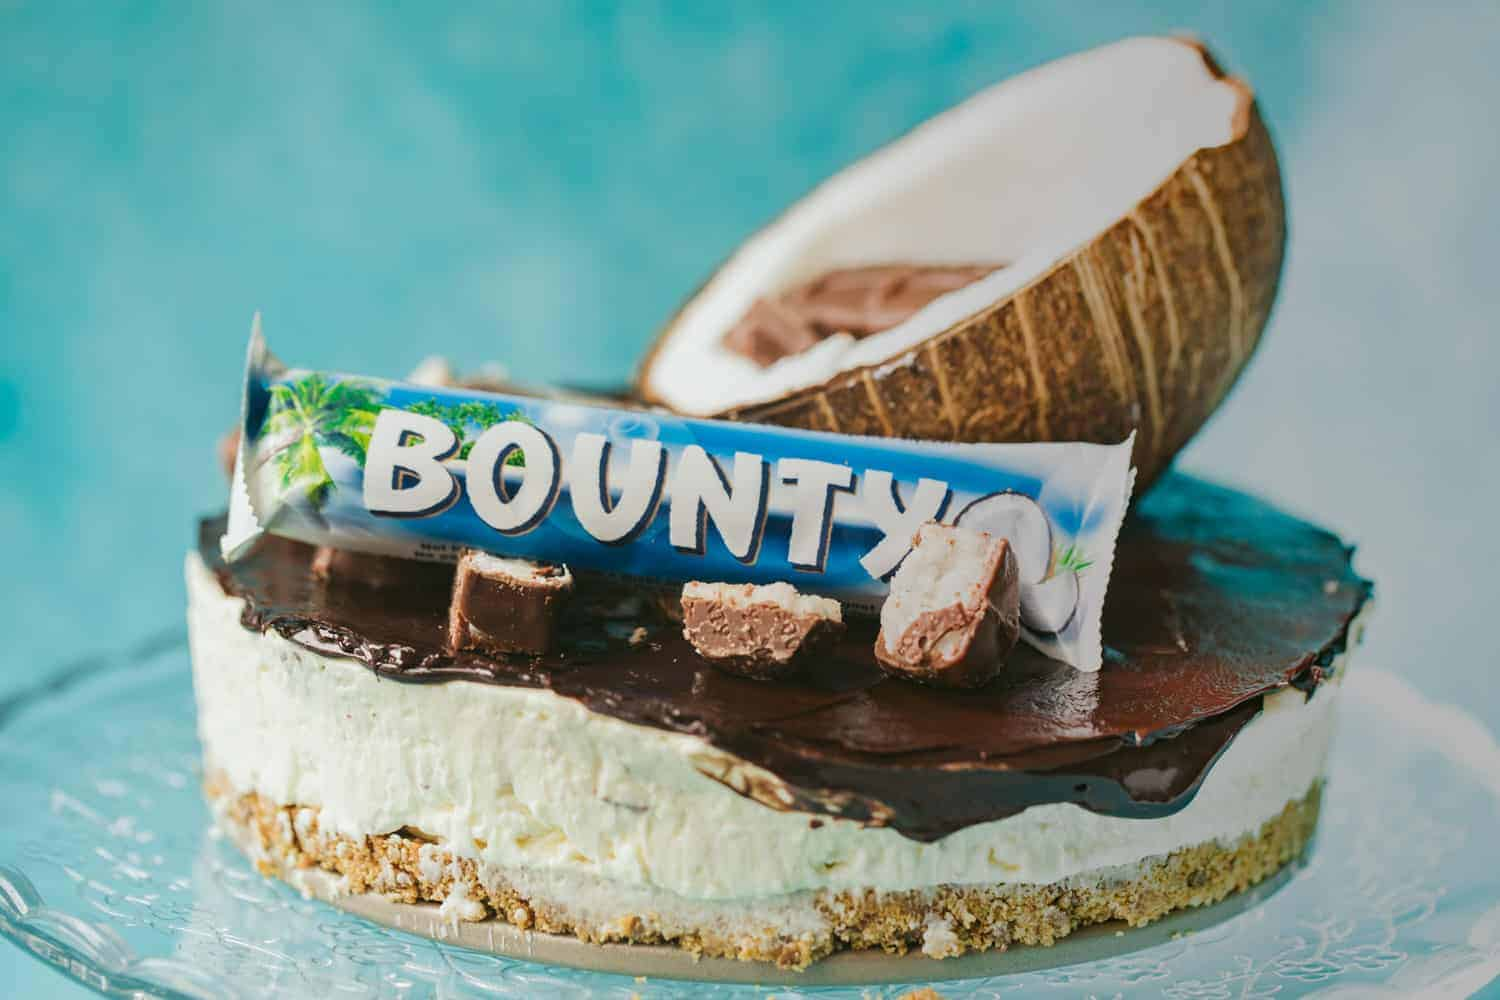 A cheesecake with chocolate ganache on top, half a coconut and Bounty bars are decorating the cheesecake